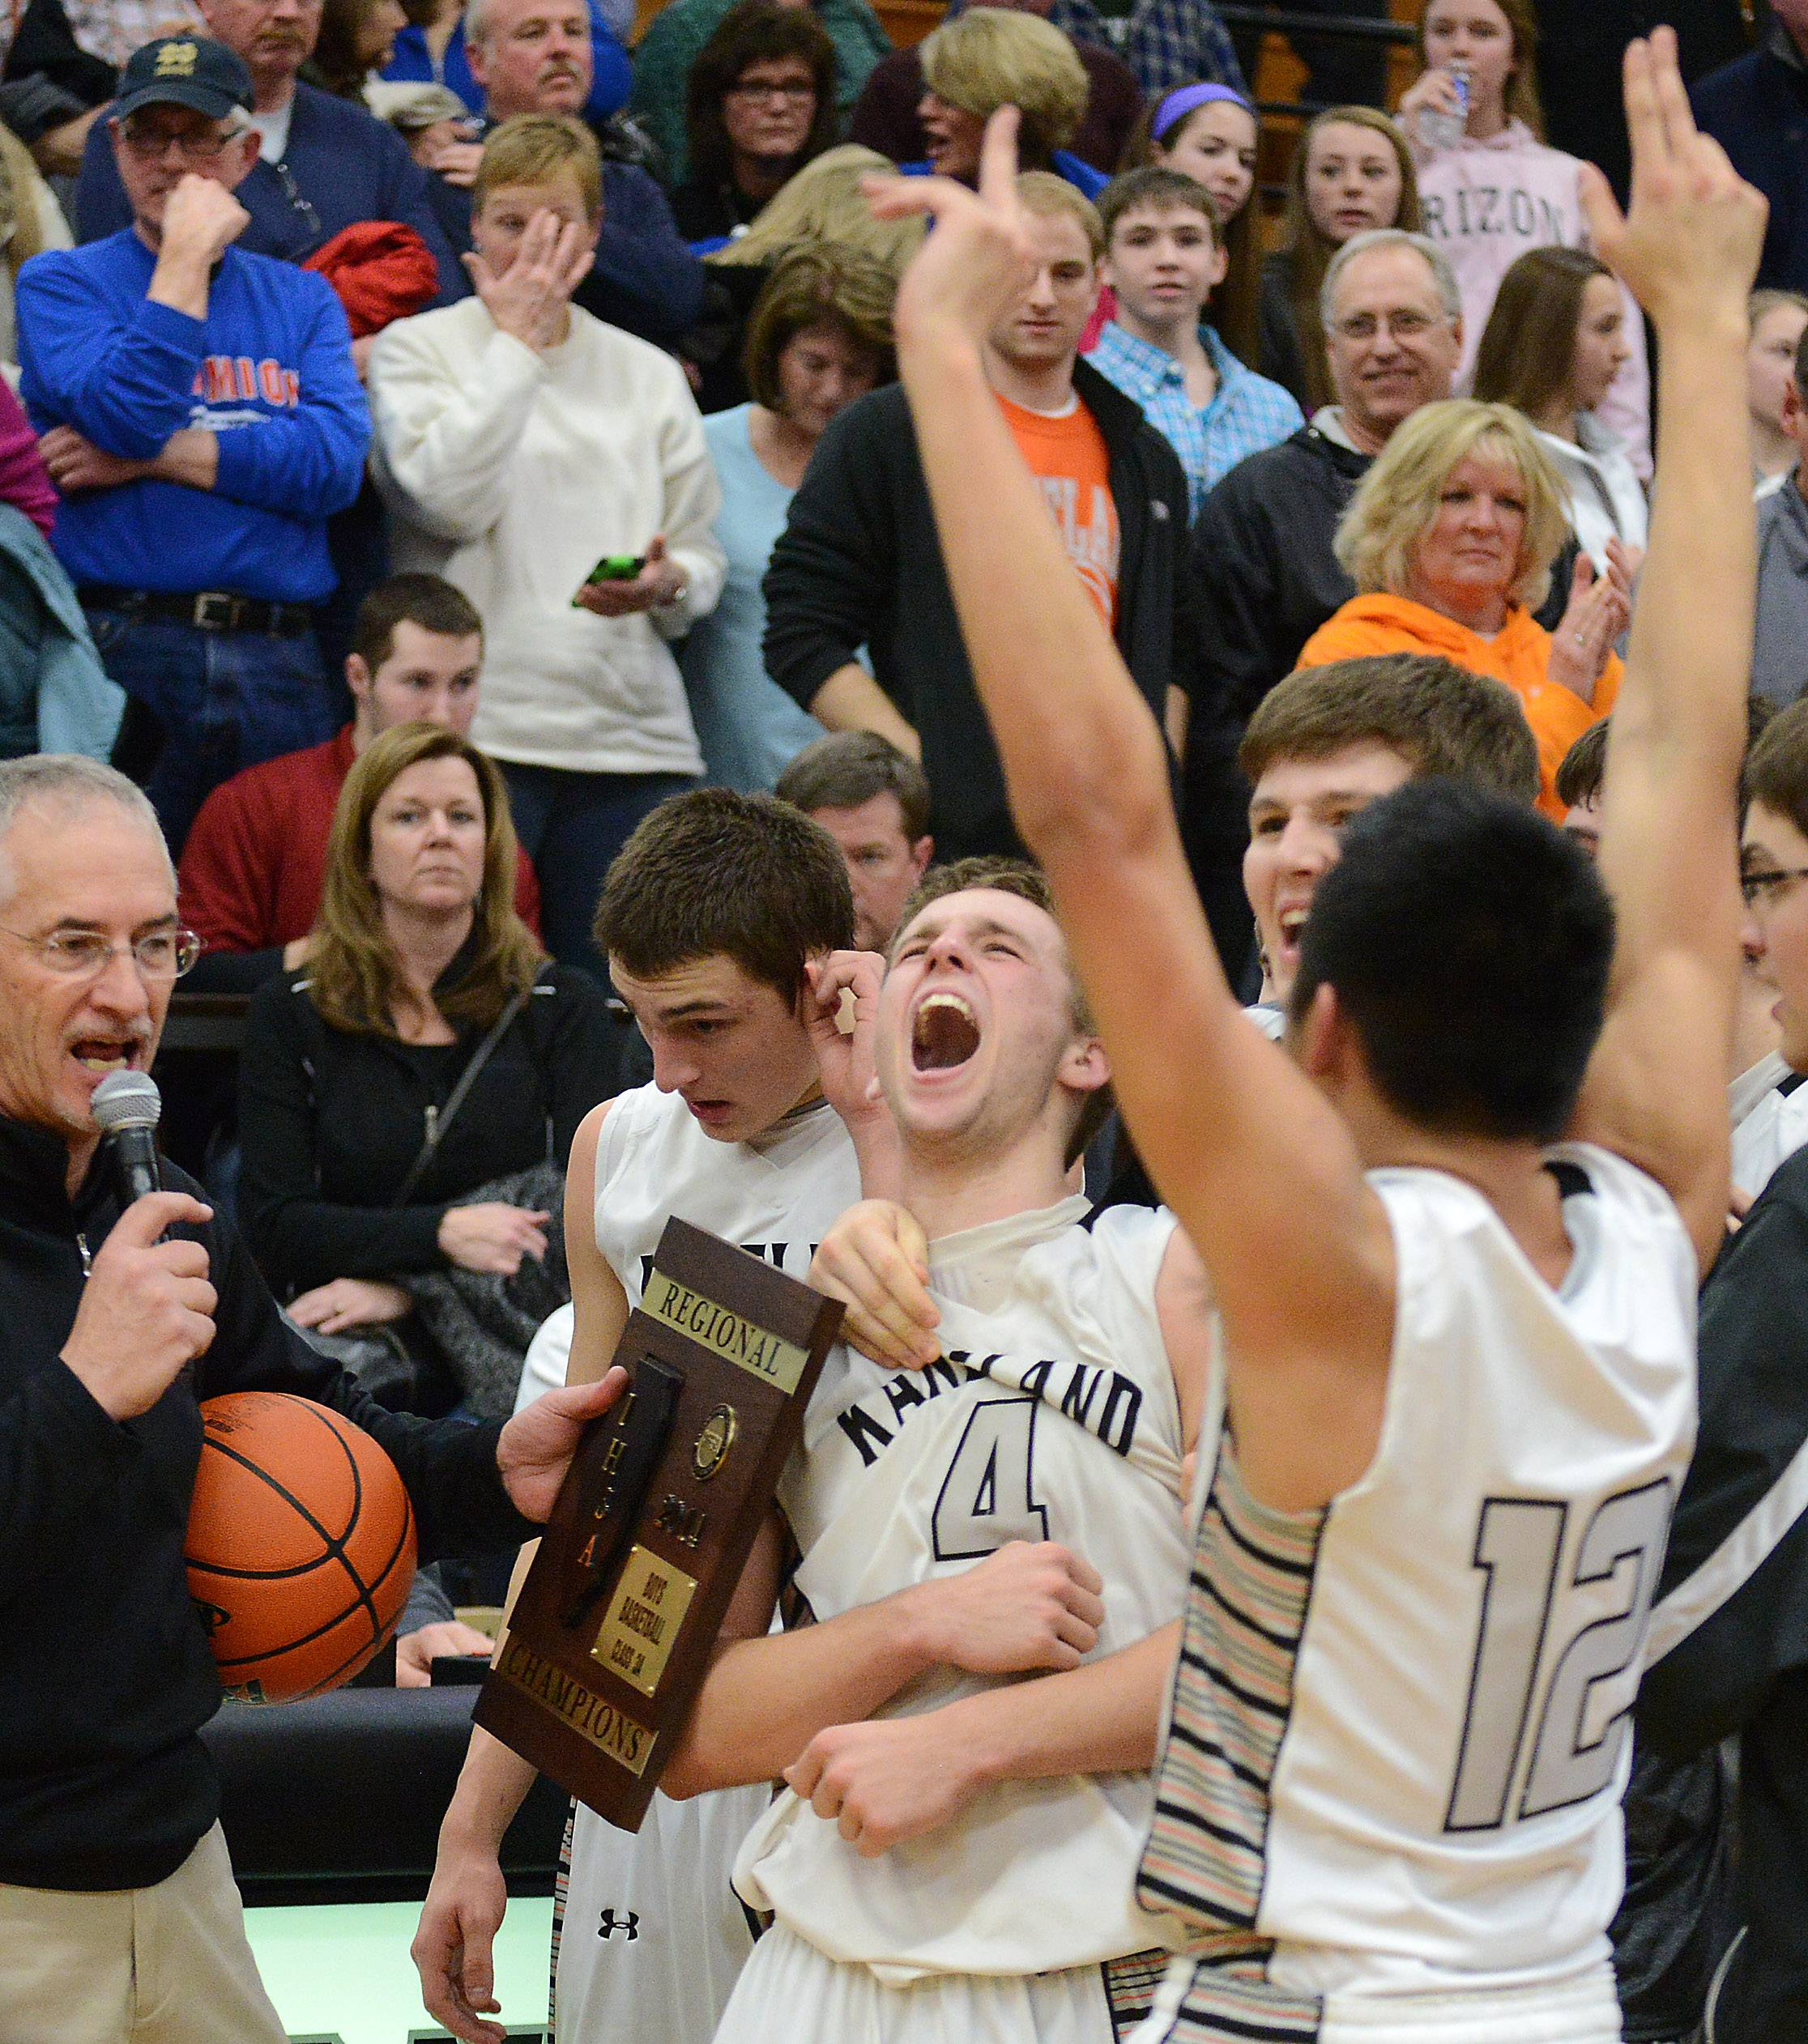 Kaneland players, including Drew David and Ben Barnes celebrate as they're awarded the regional championship plaque.